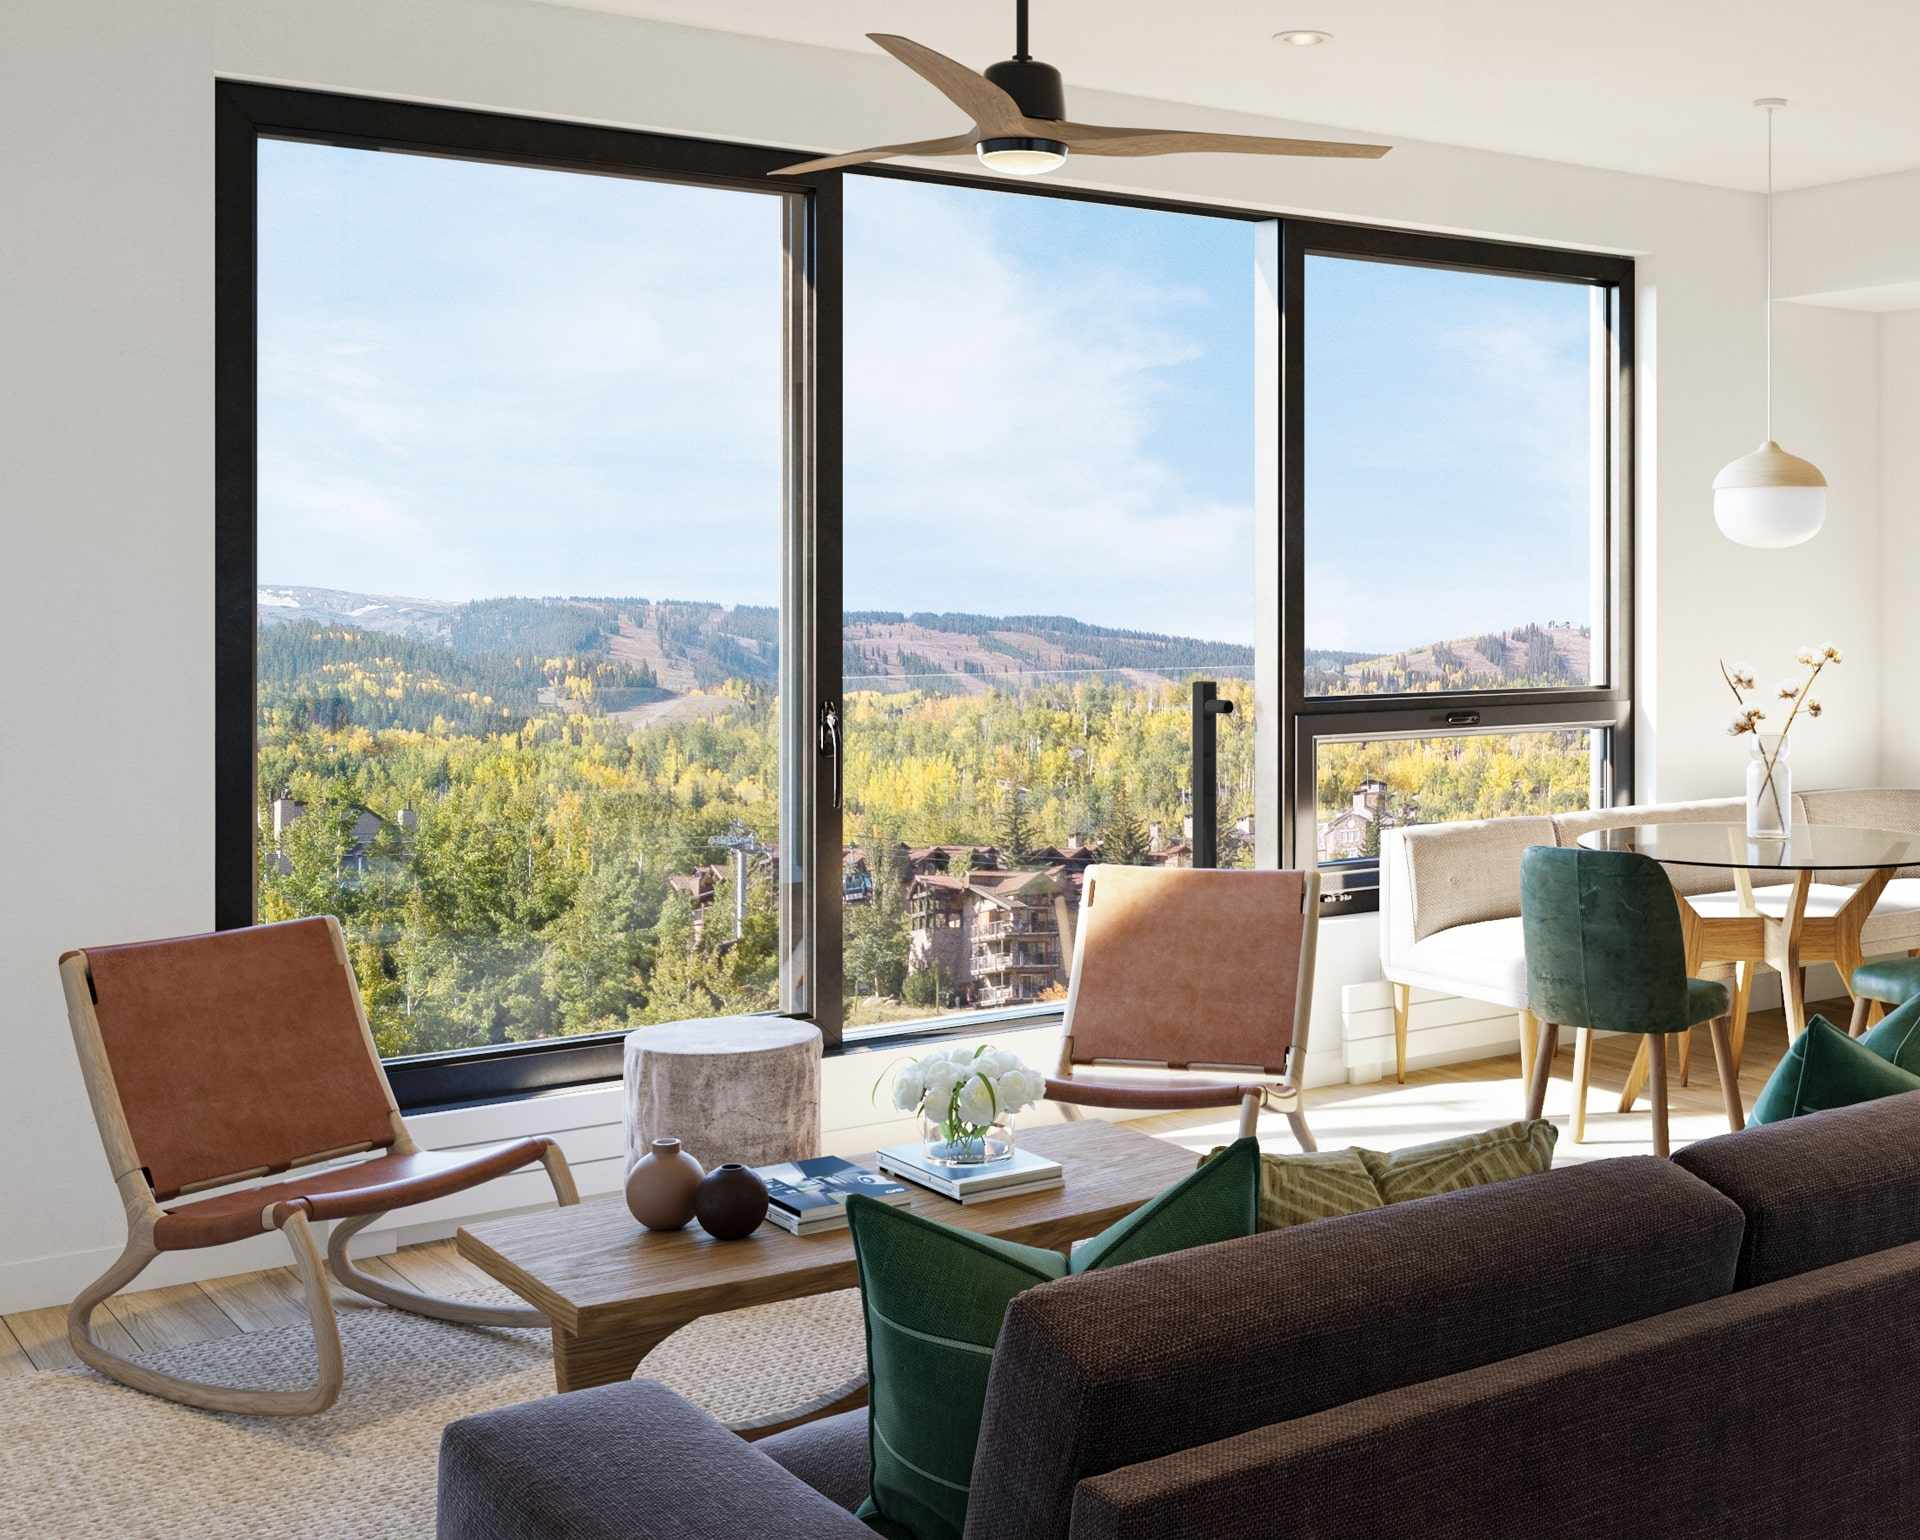 Infinity Living Rooms - Many residences include sliding doors that open to the outdoors, creating a seamless transition from inside to out while bringing in plenty of mountain air and natural light.